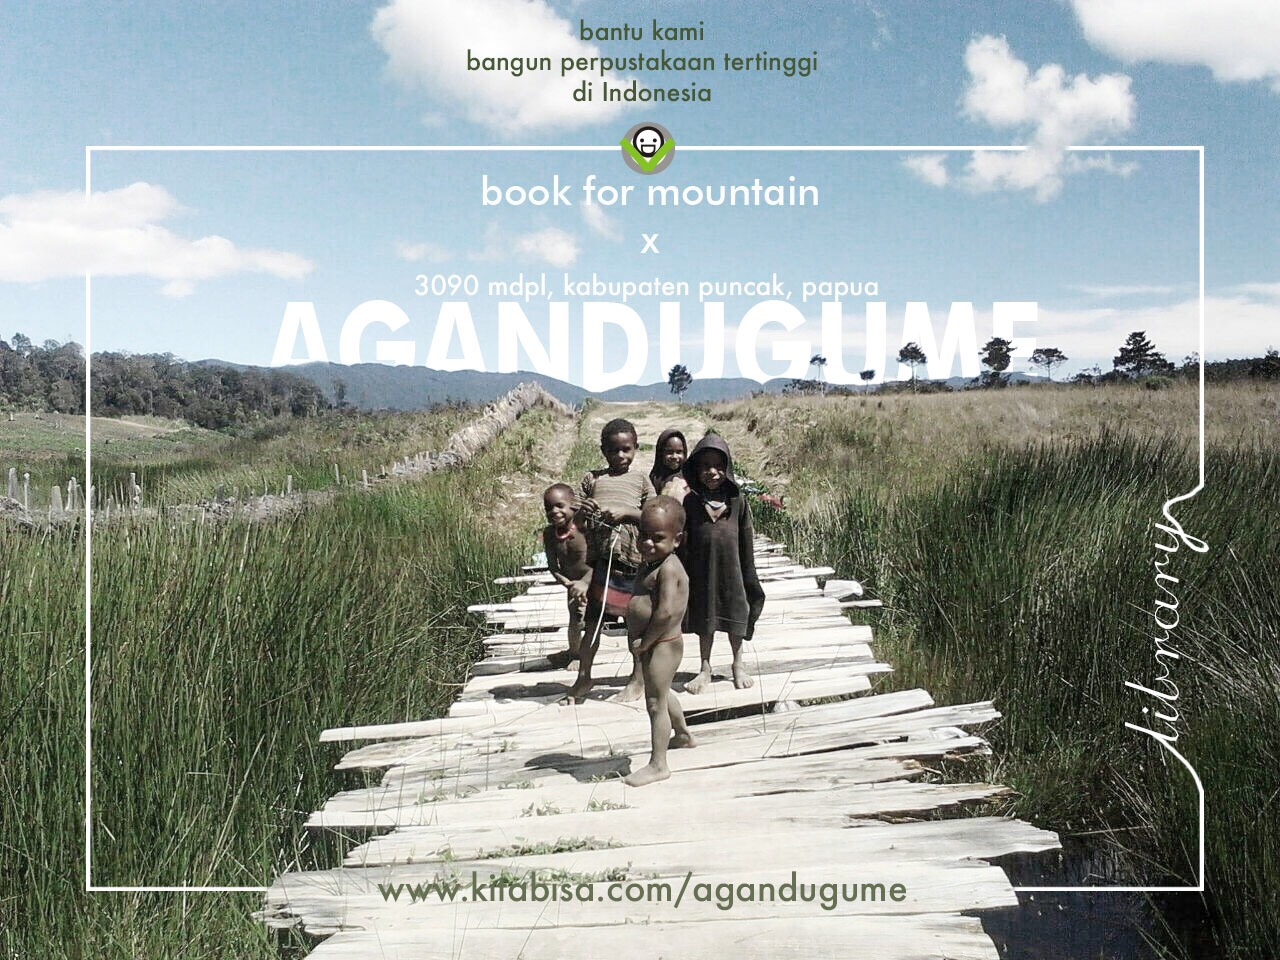 project perpustakaan komunitas book for mountain agandugume kabupaten puncak papua